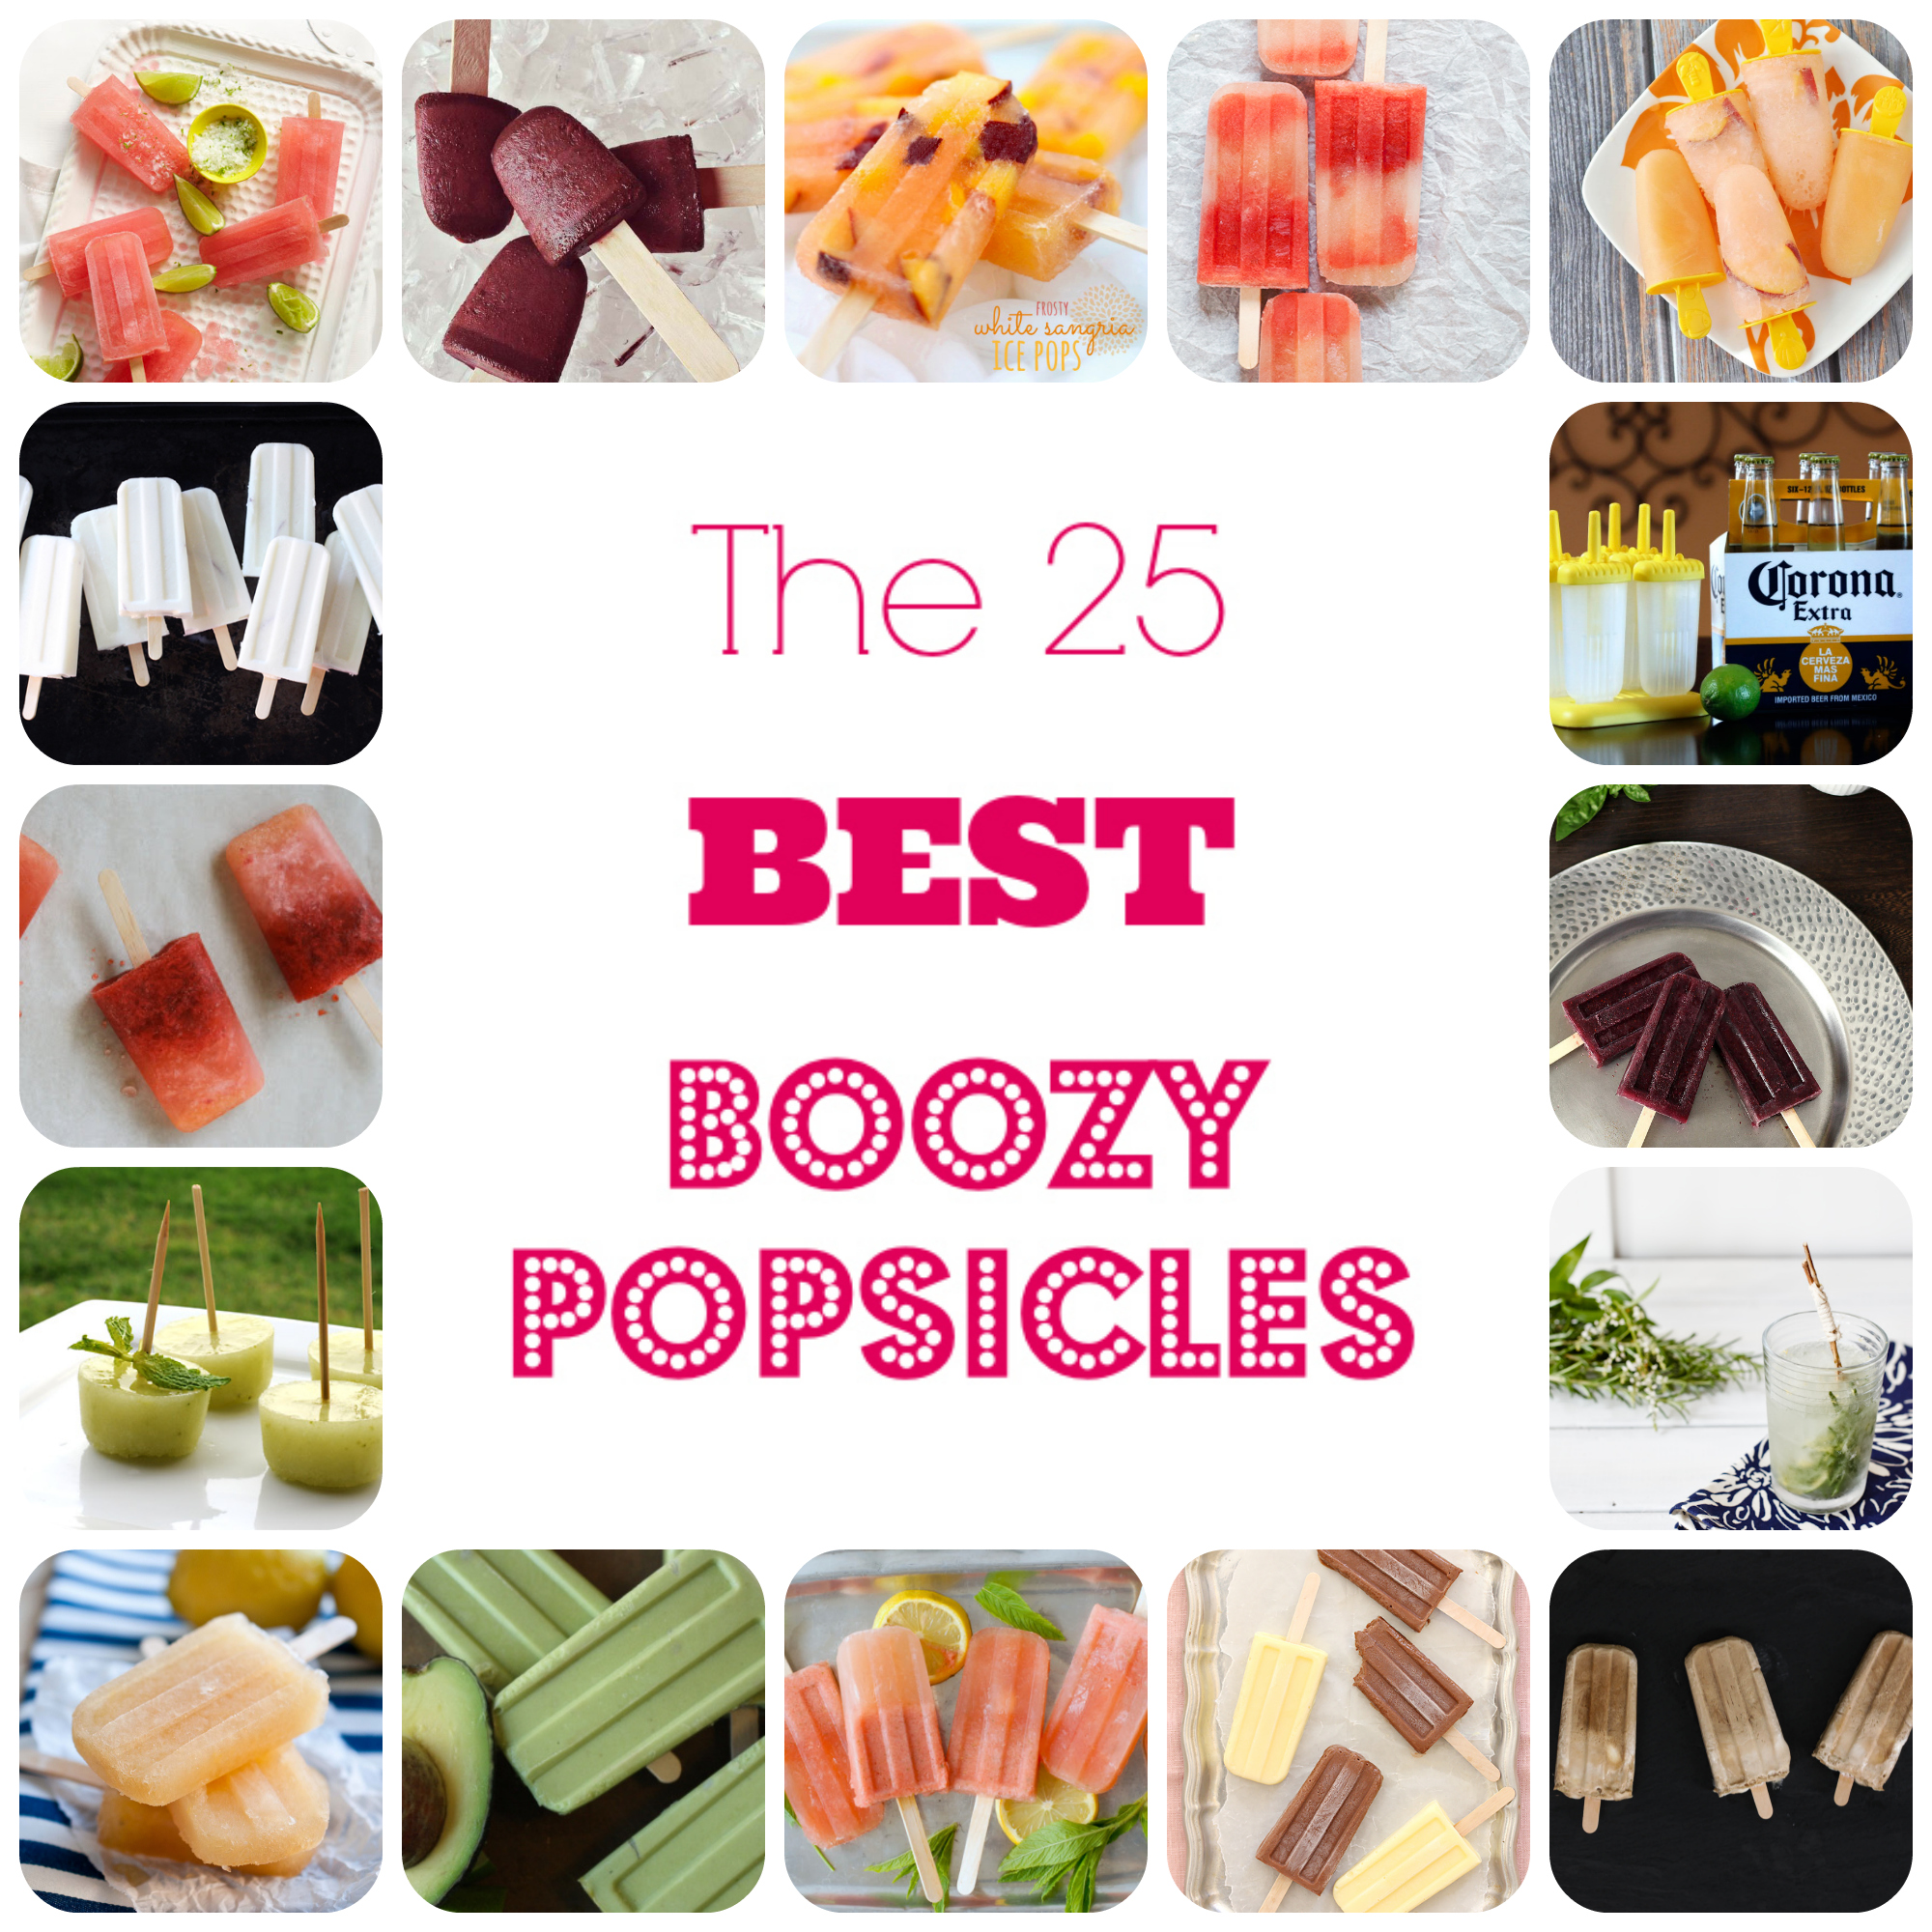 The 25 Best Boozy Popsicles